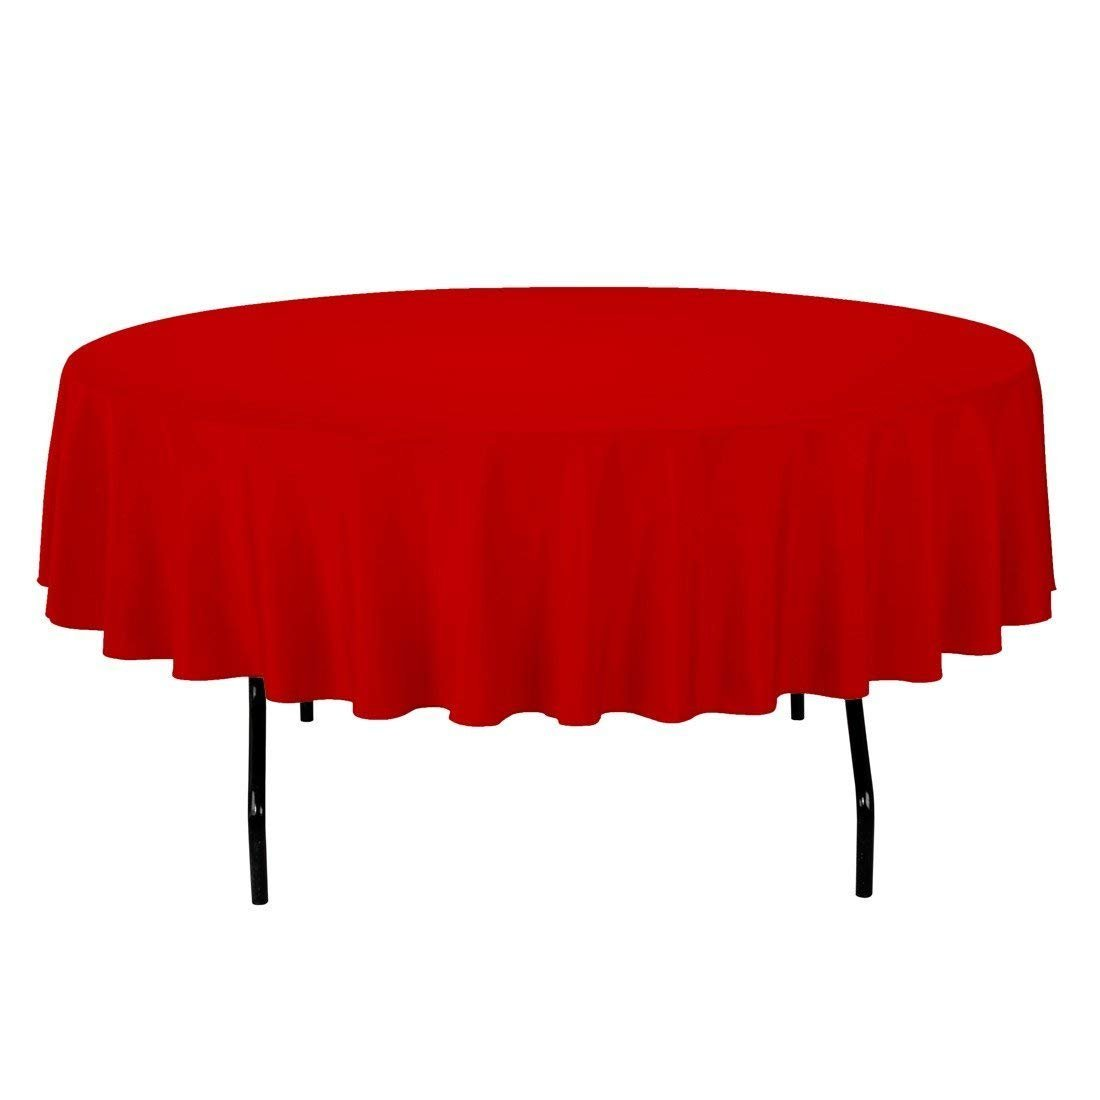 Zdada 72inch Round 2Suits Red Polyester Table Cover Washable Tablecloth Wedding Party Home Restaurant Hotel Use